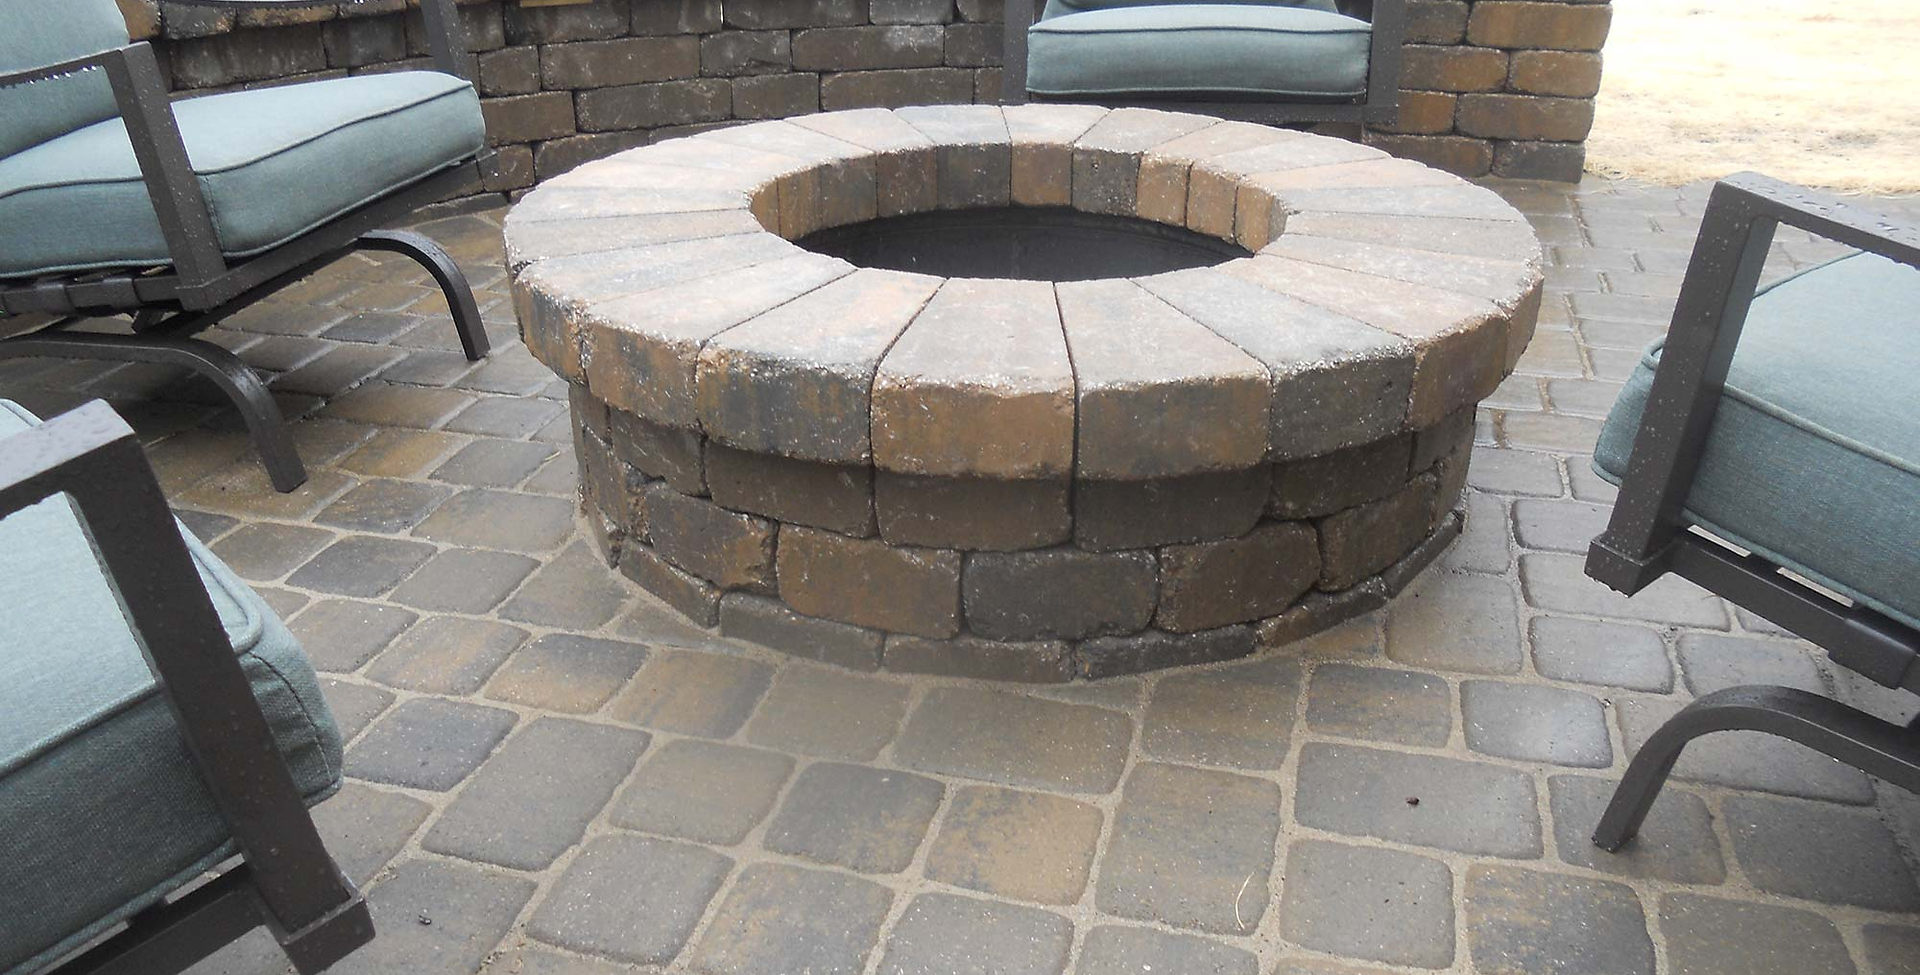 Outlook Hardscape designed circular firepit.